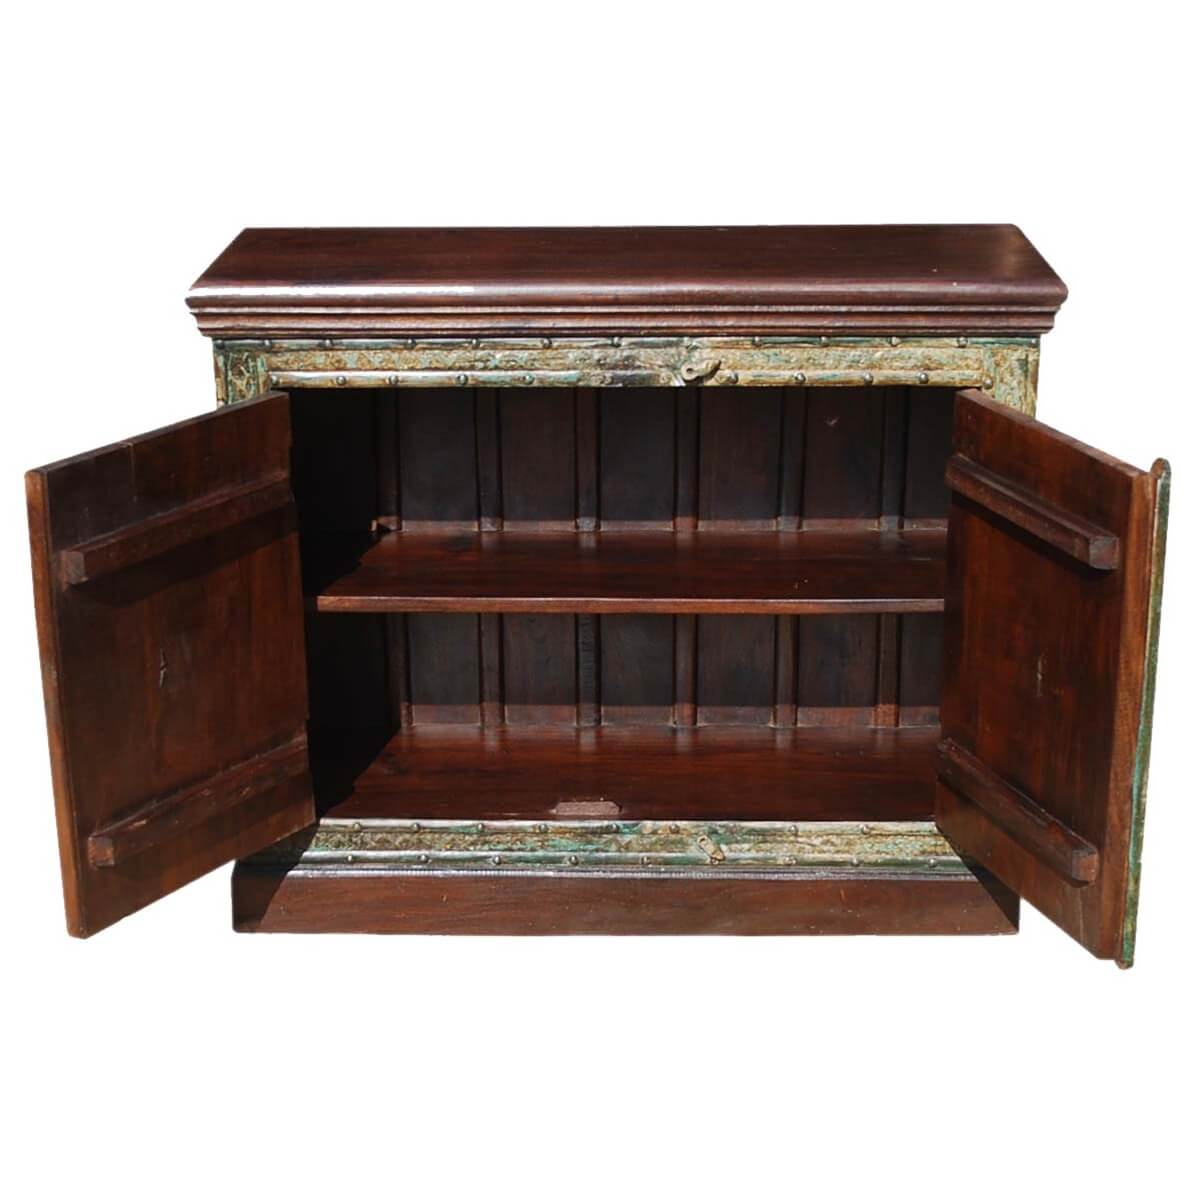 Gothic 2 Door Reclaimed Wood Furniture Storage Buffet